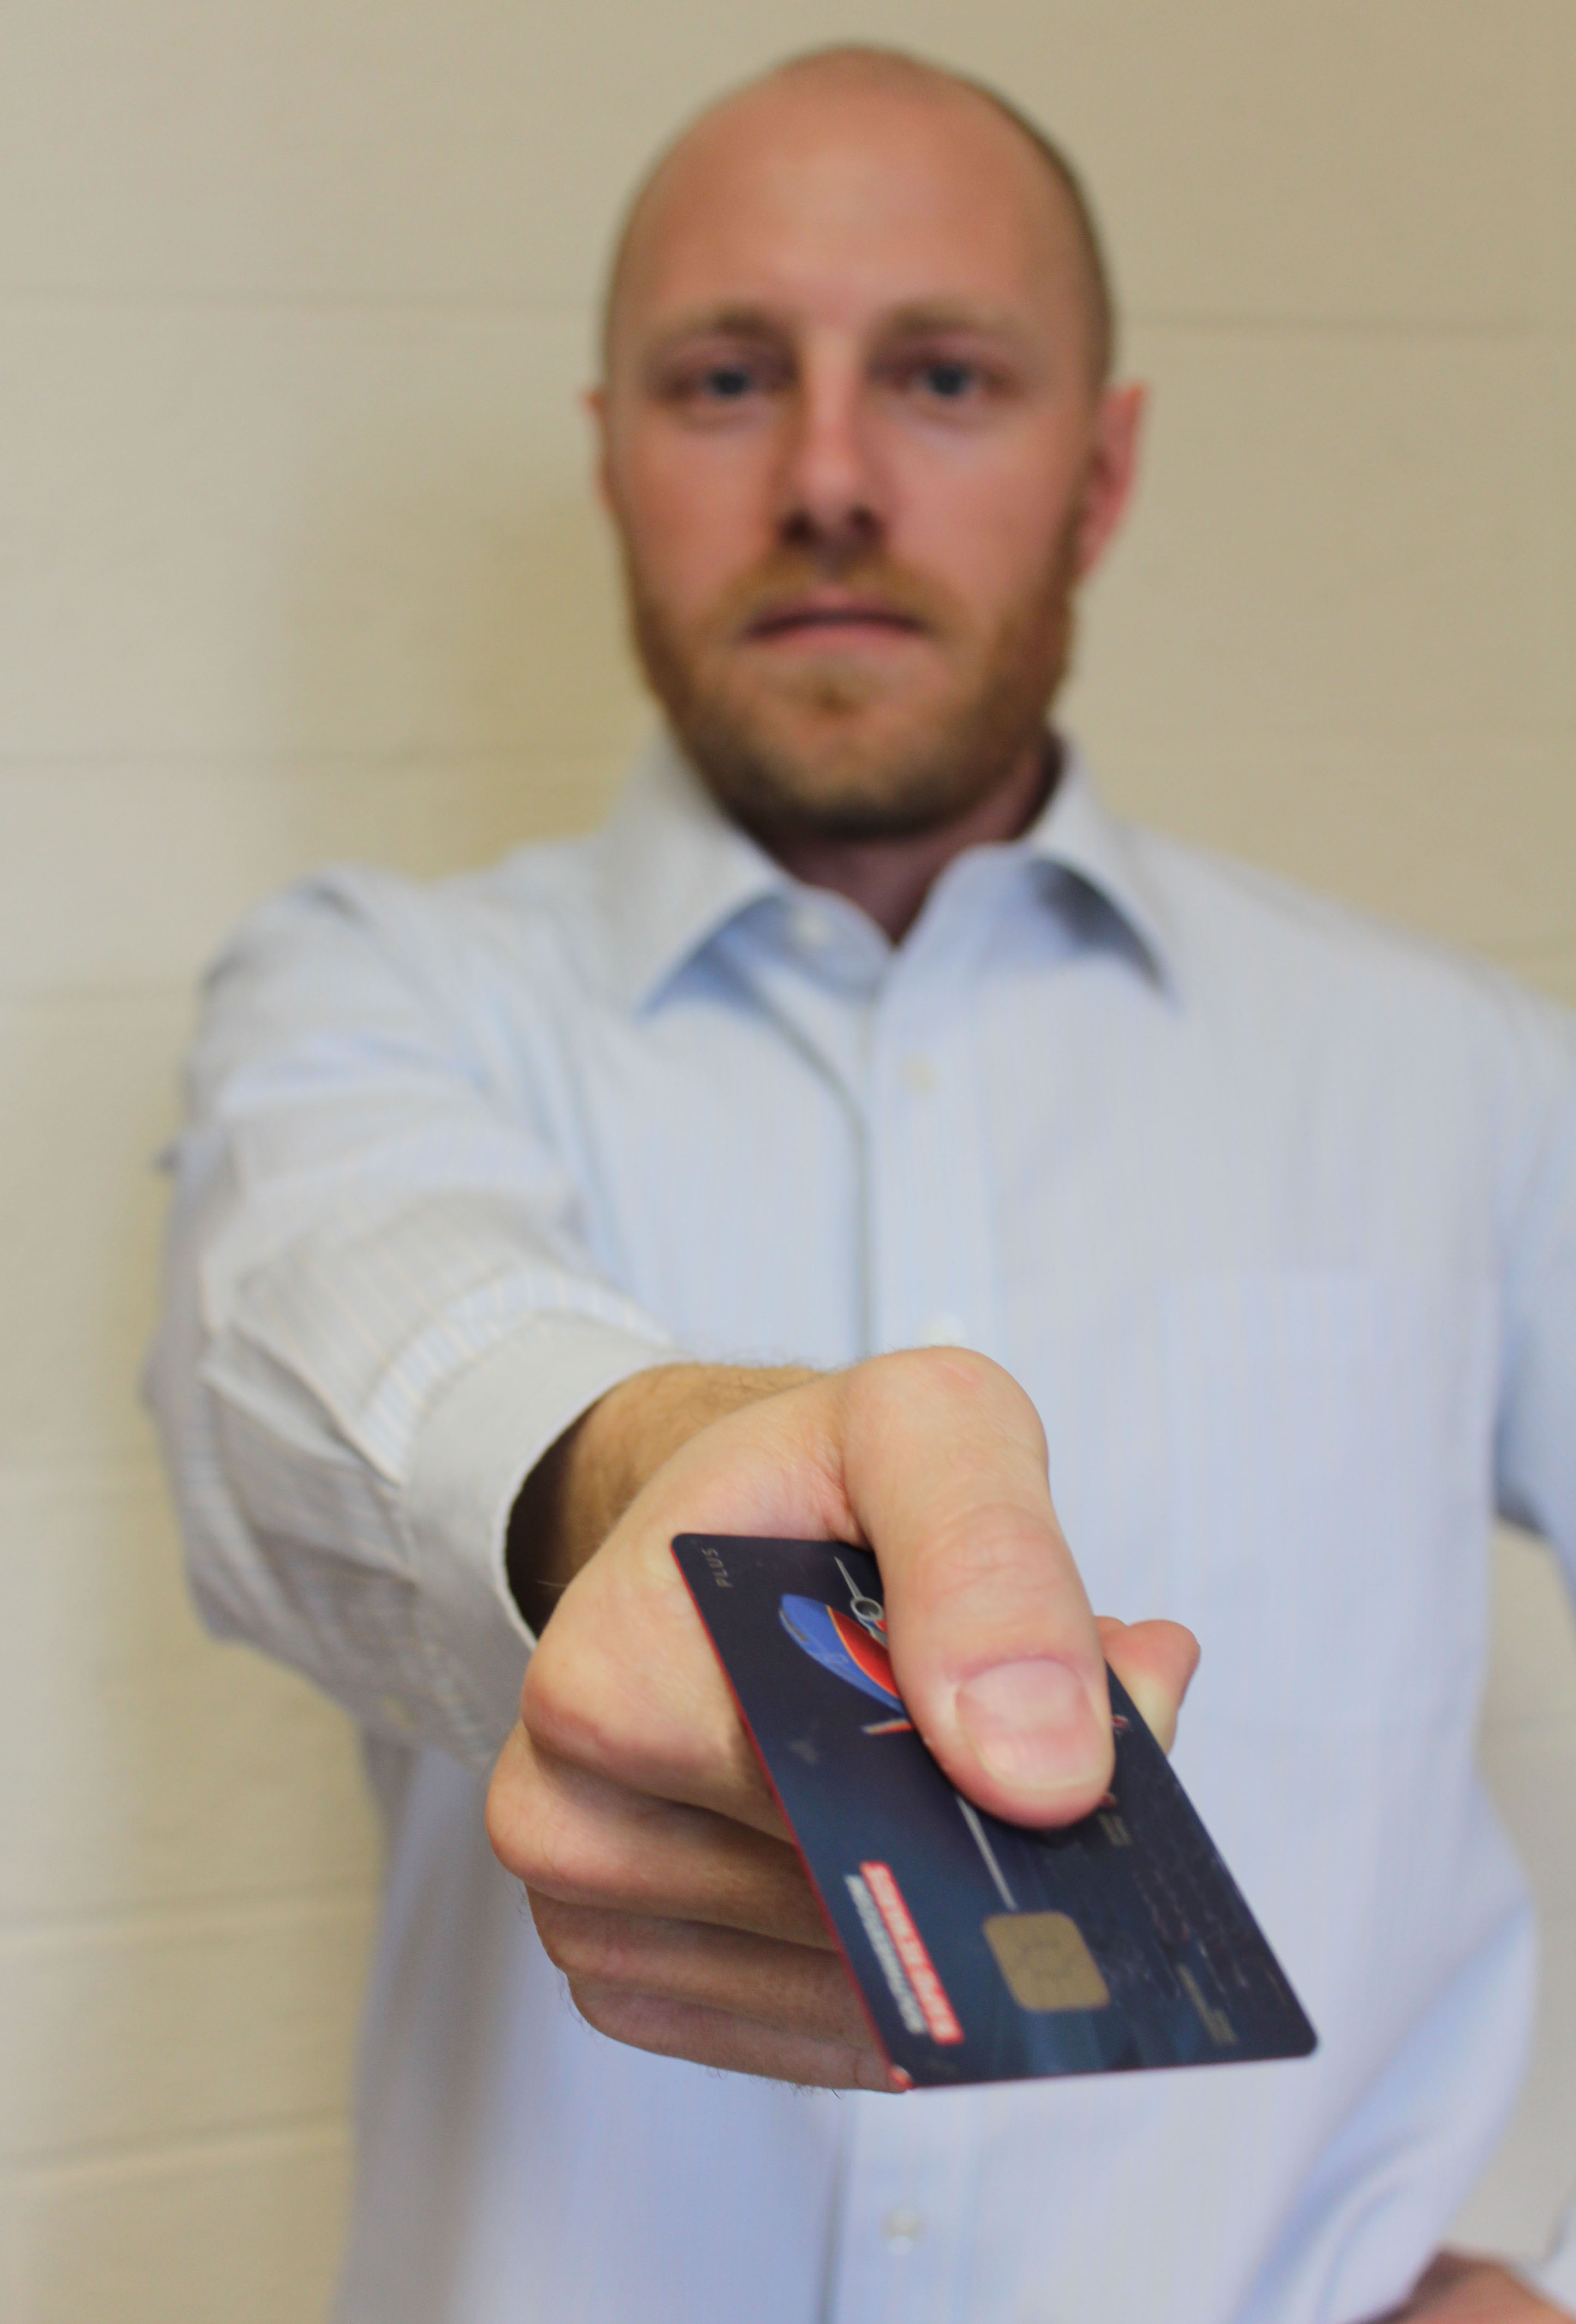 Man holds a credit card with a chip on it.